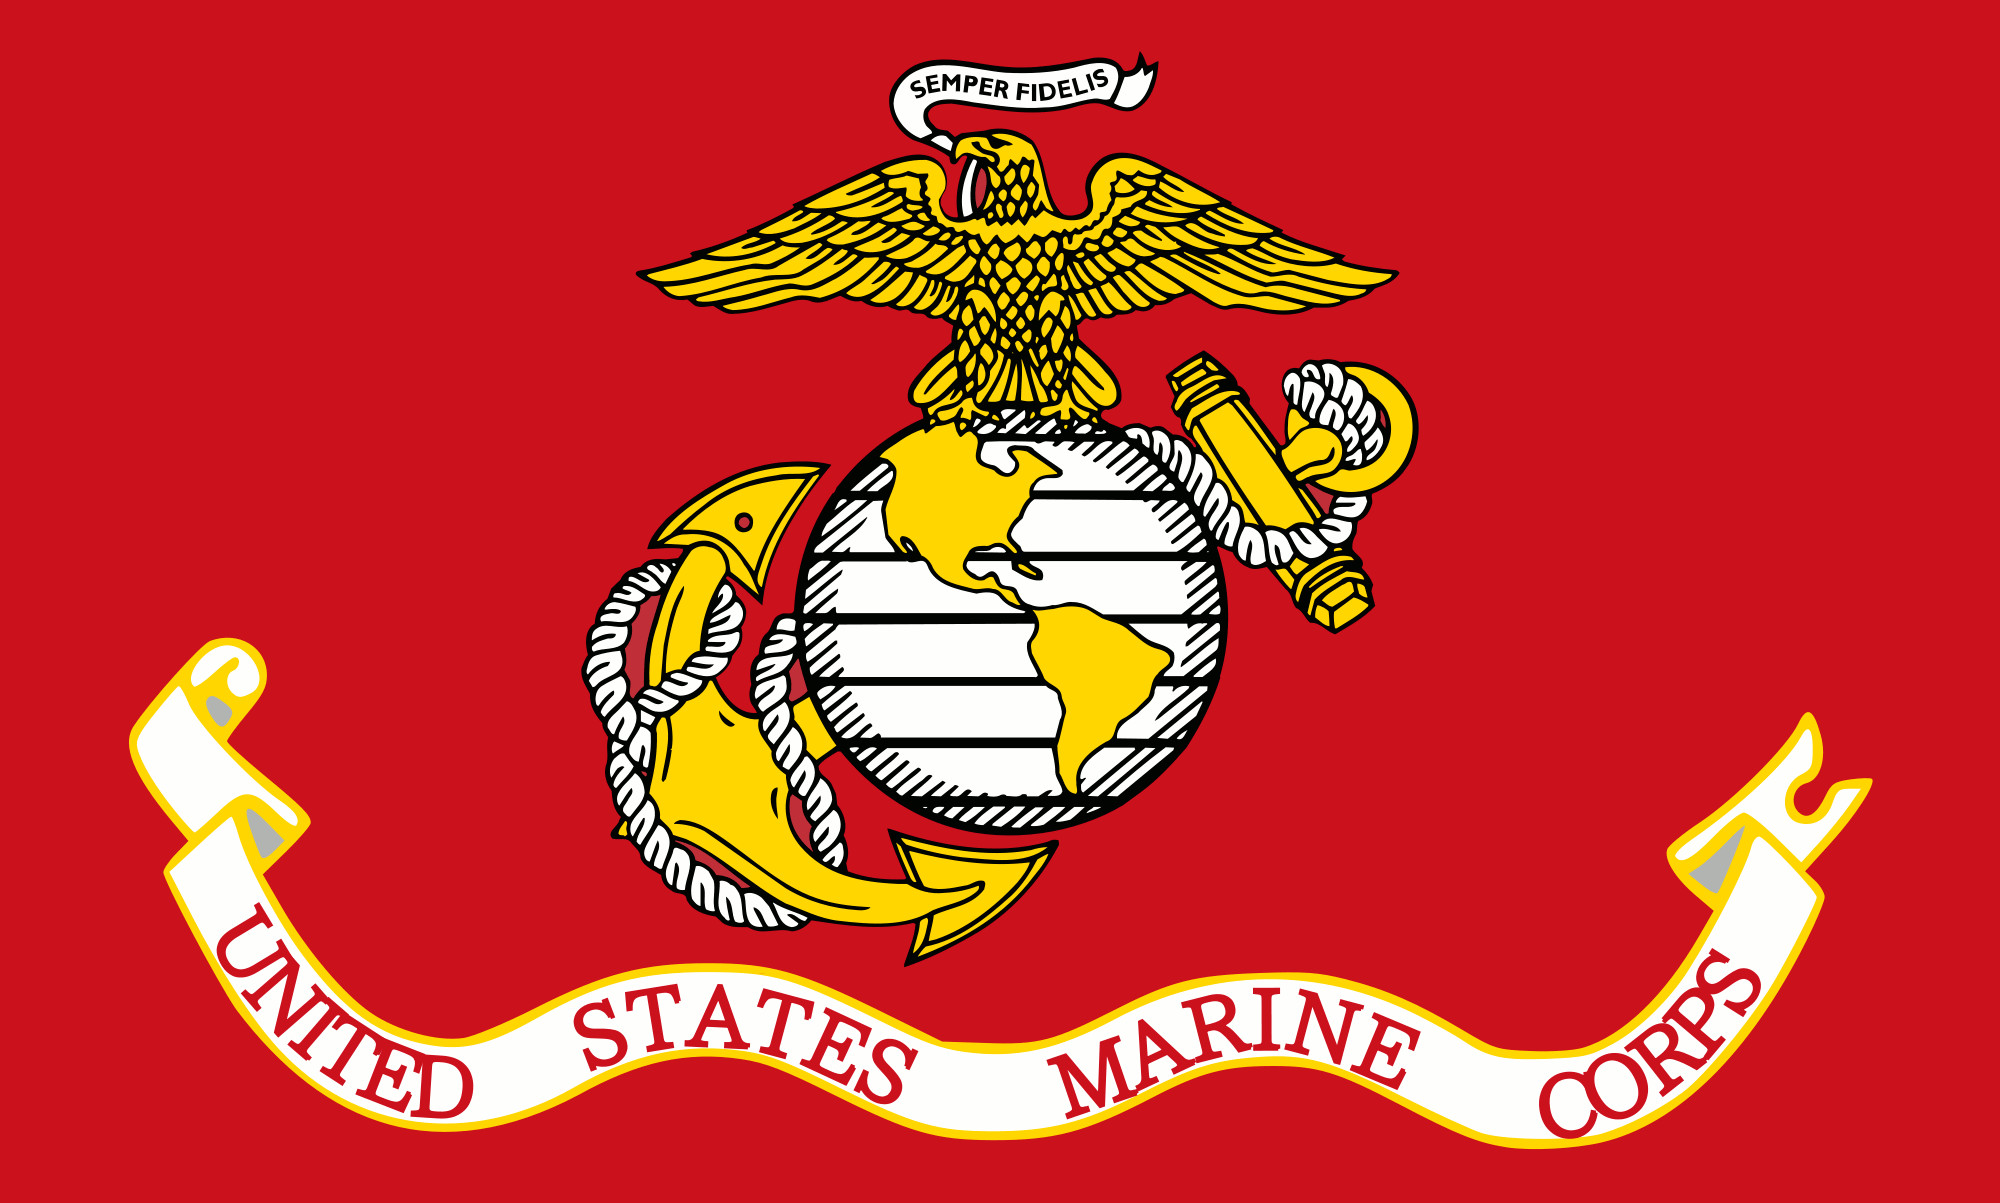 United States Marine Corps Wallpaper   Wallpaper Download